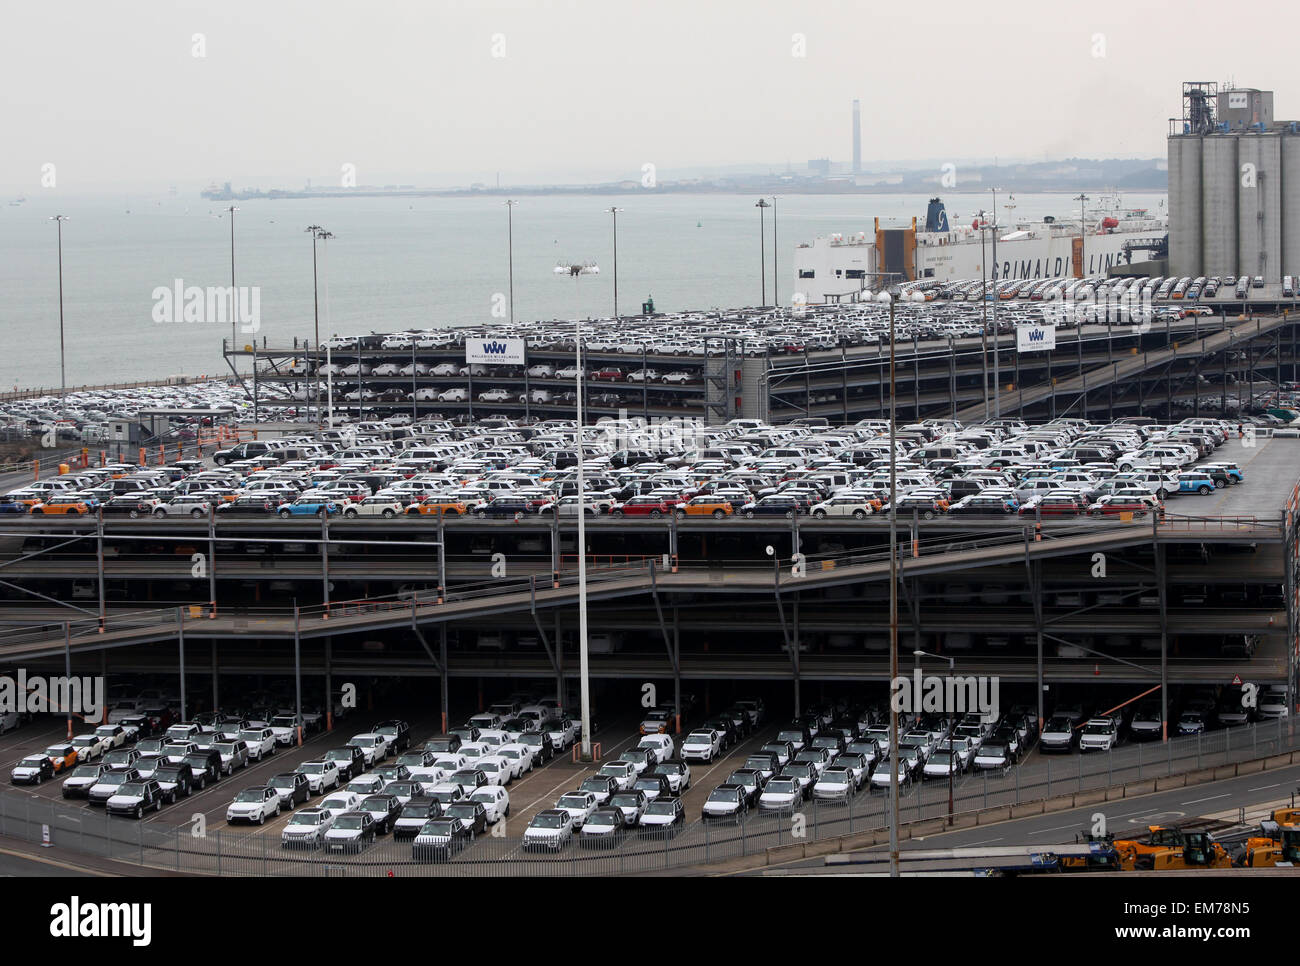 Southampton Docks Mini and Land Rover cars parked at Wallenius Wilhelmsen logistics awaiting export via a car transporter - Stock Image